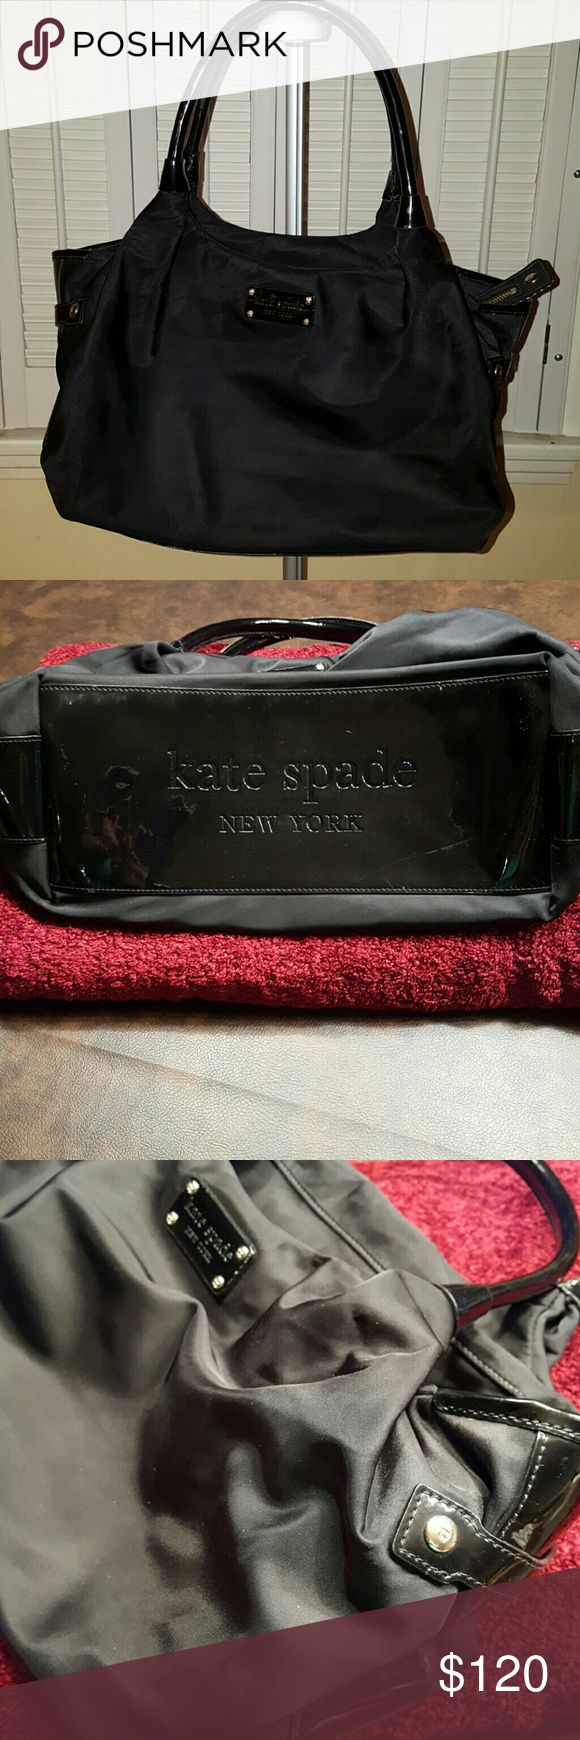 Kate Spade Black Nylon & Patent Shoulder bag Gorgeous, trendy black bag from Kate Spade. Preloved but in great shape.  Nylon with patent leather trim on sides and bottom. Some minor marks on bottom. Pic 2.   Just cleaned professionally inside and out. 16in x 10in. A great everyday bag. kate spade Bags